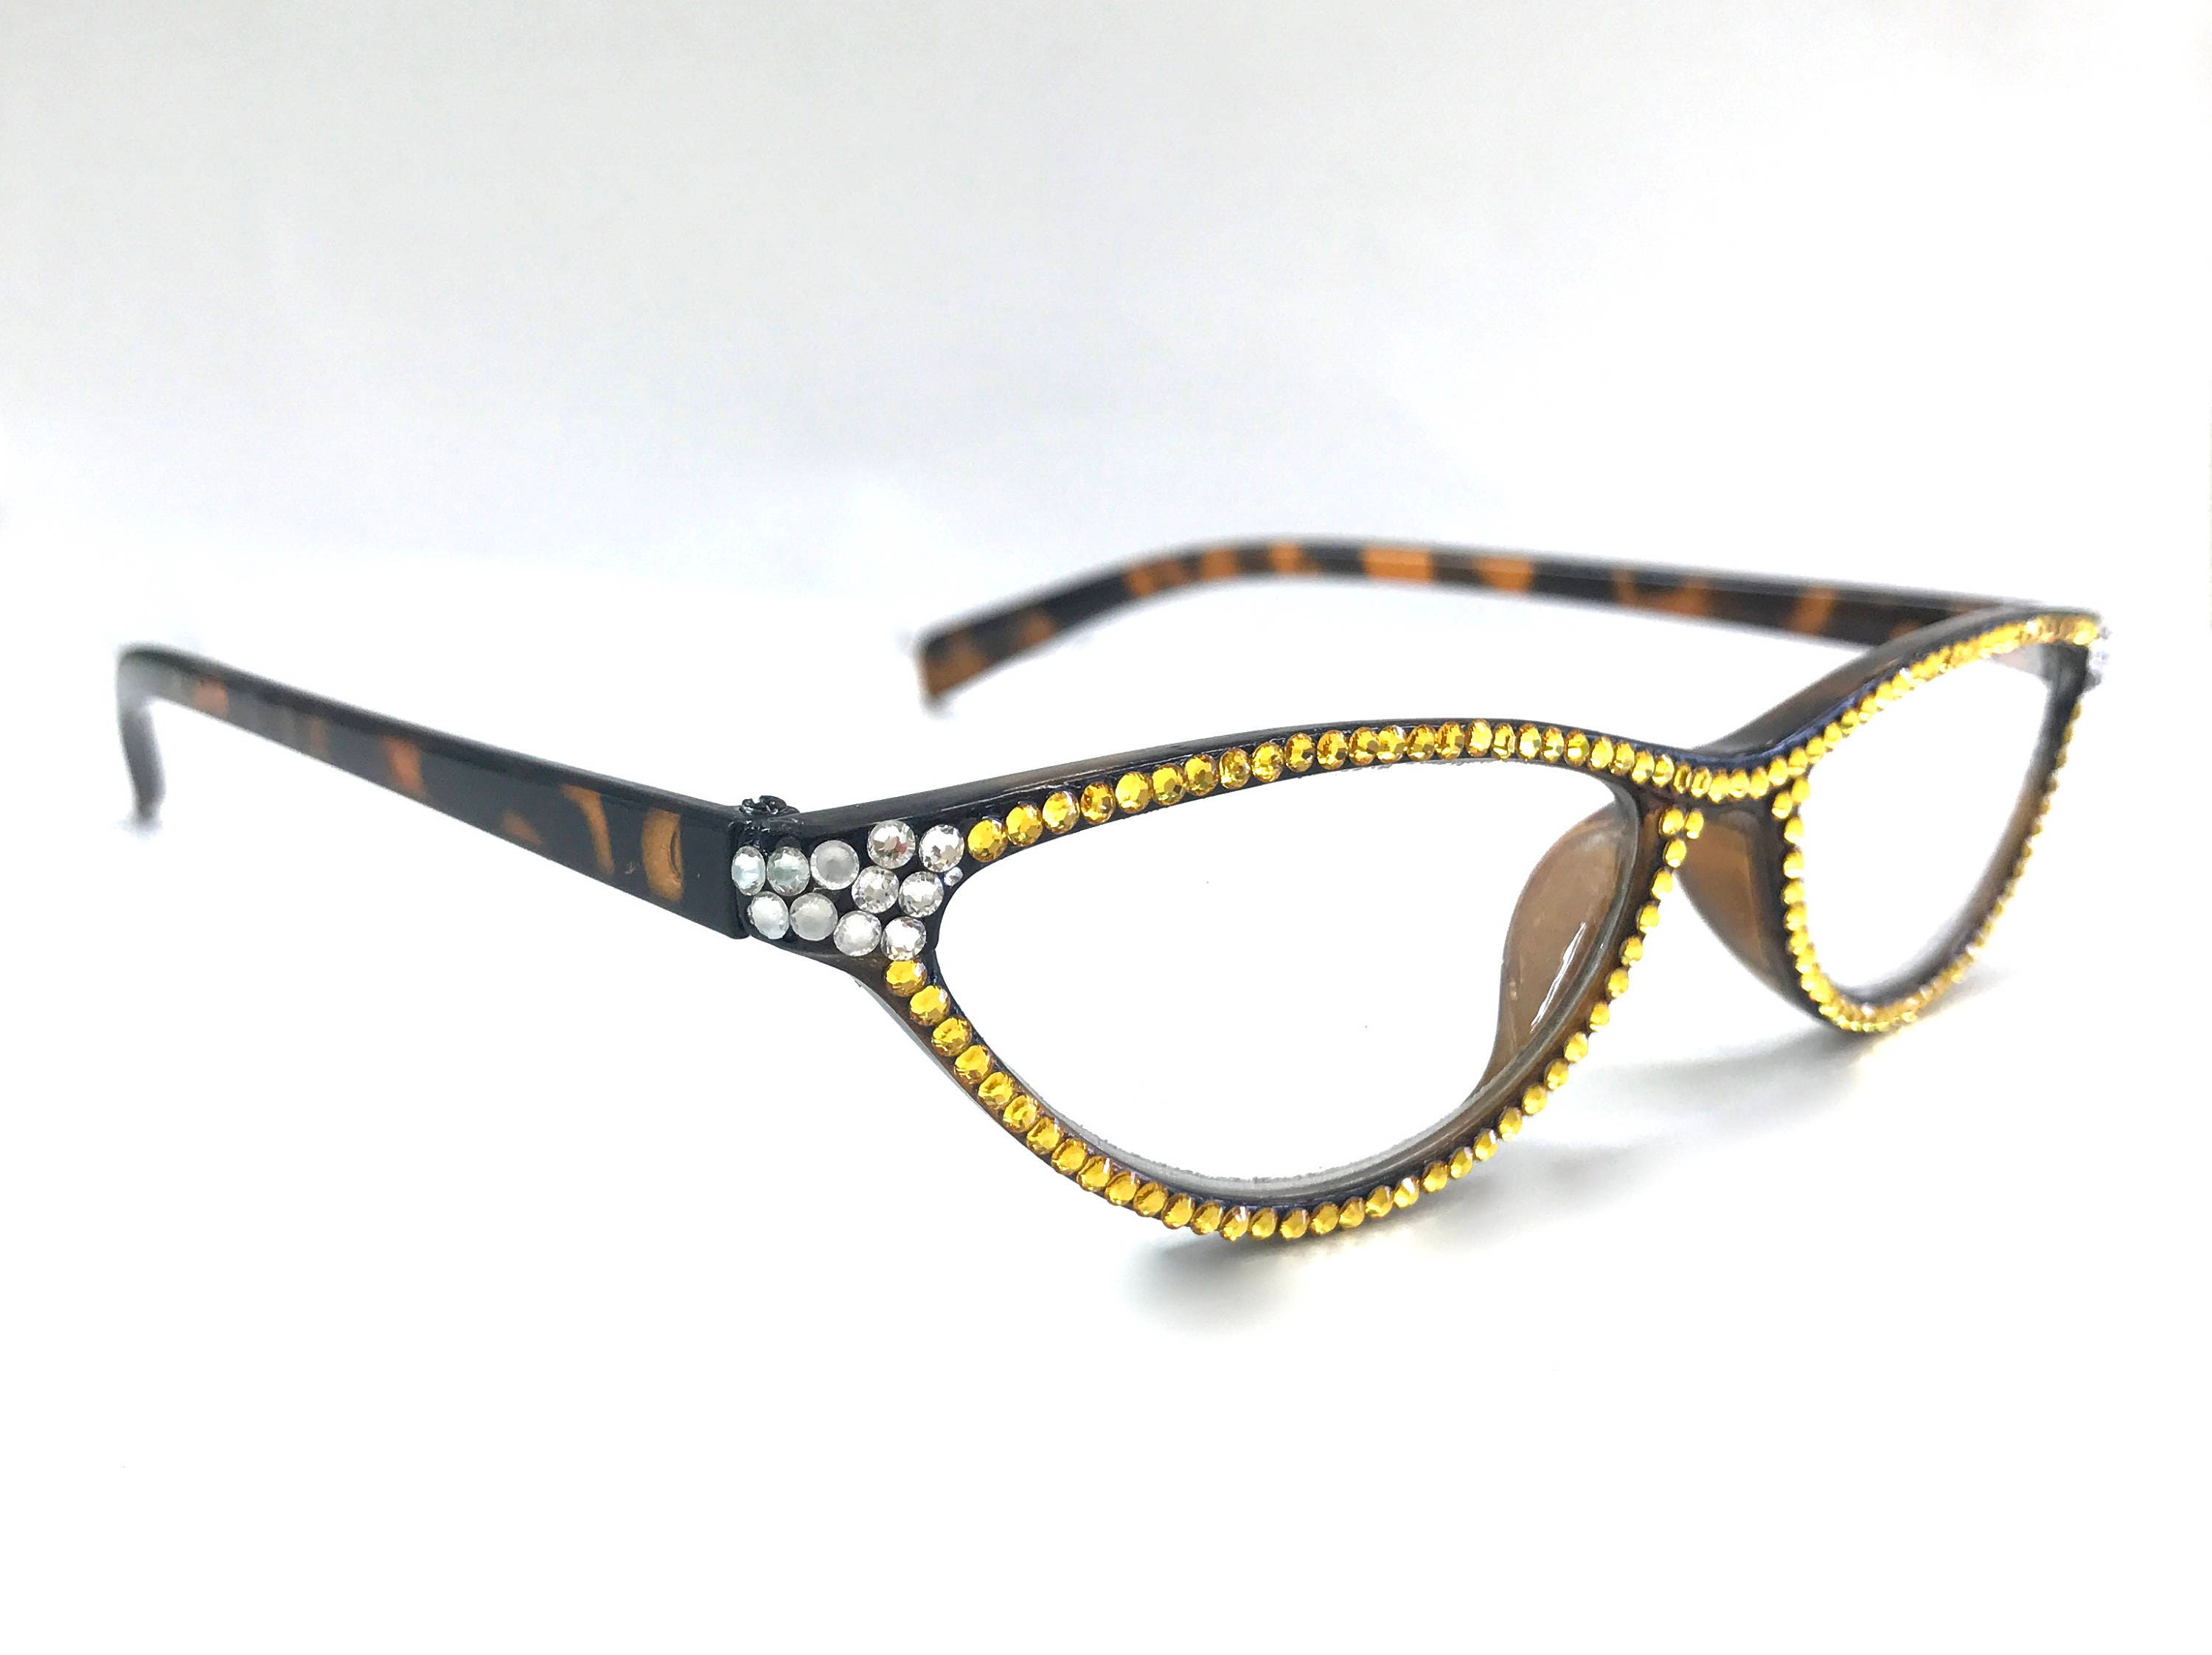 0bcd69b52ff6 ... Swarovski Crystal Readers Reading Glasses. gallery photo ...